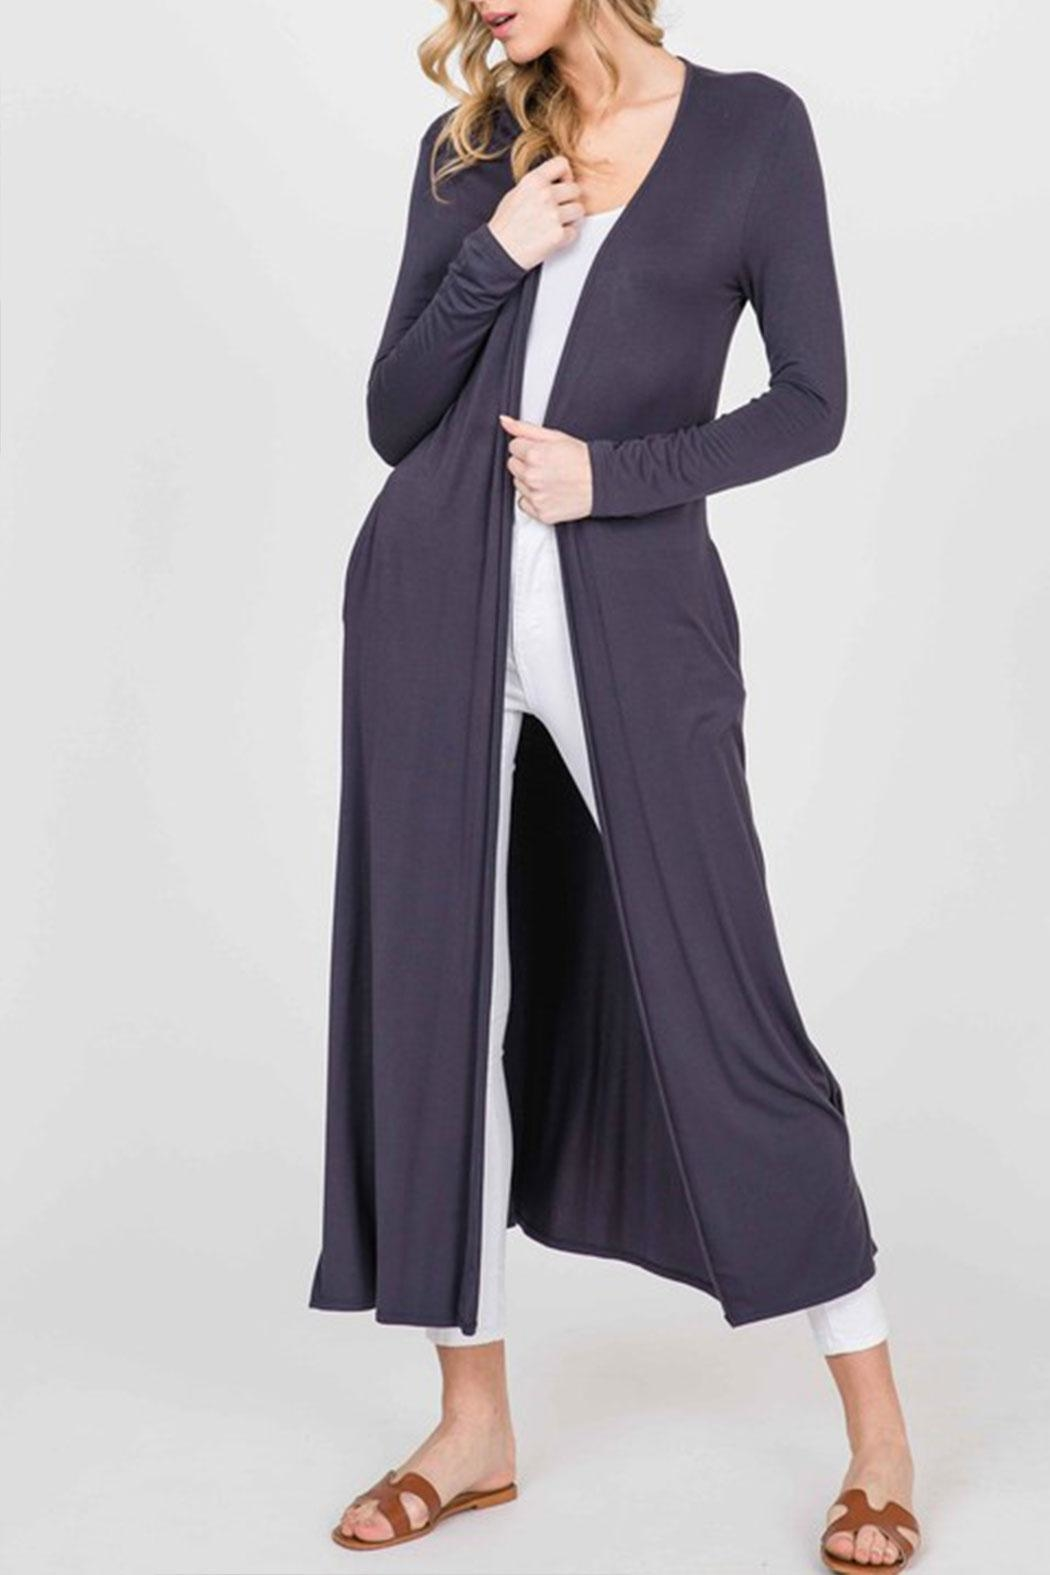 annabelle Open Front Maxi-Cardigan - Main Image